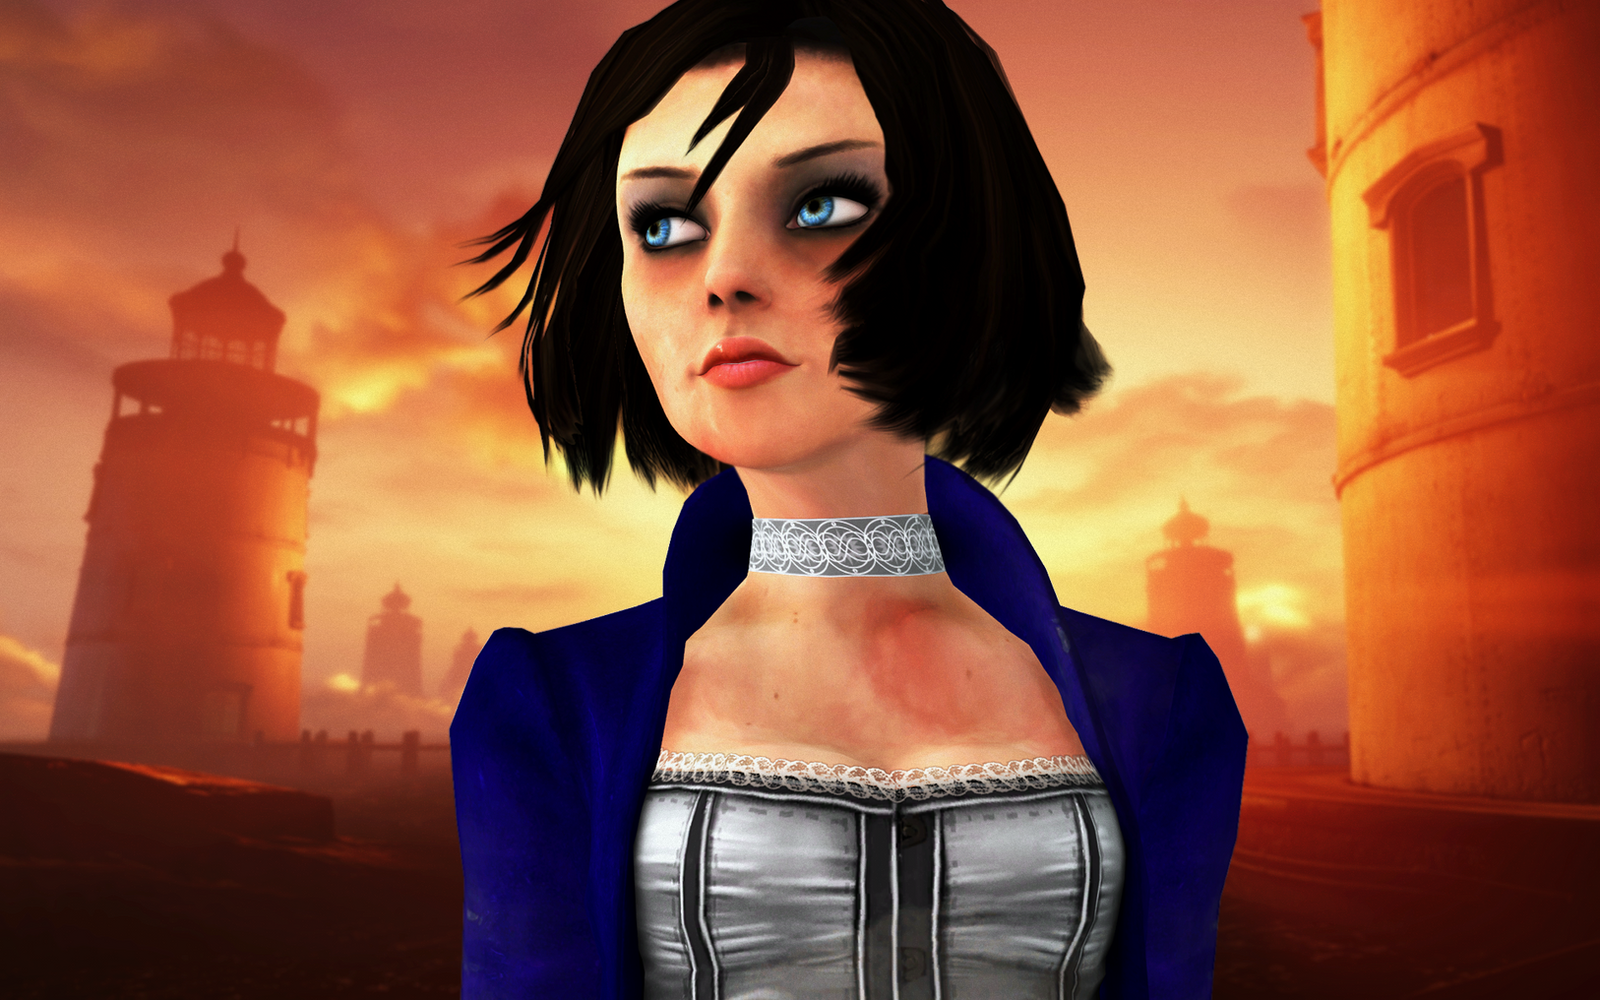 elizabeth bioshock infinite wallpapers - photo #20